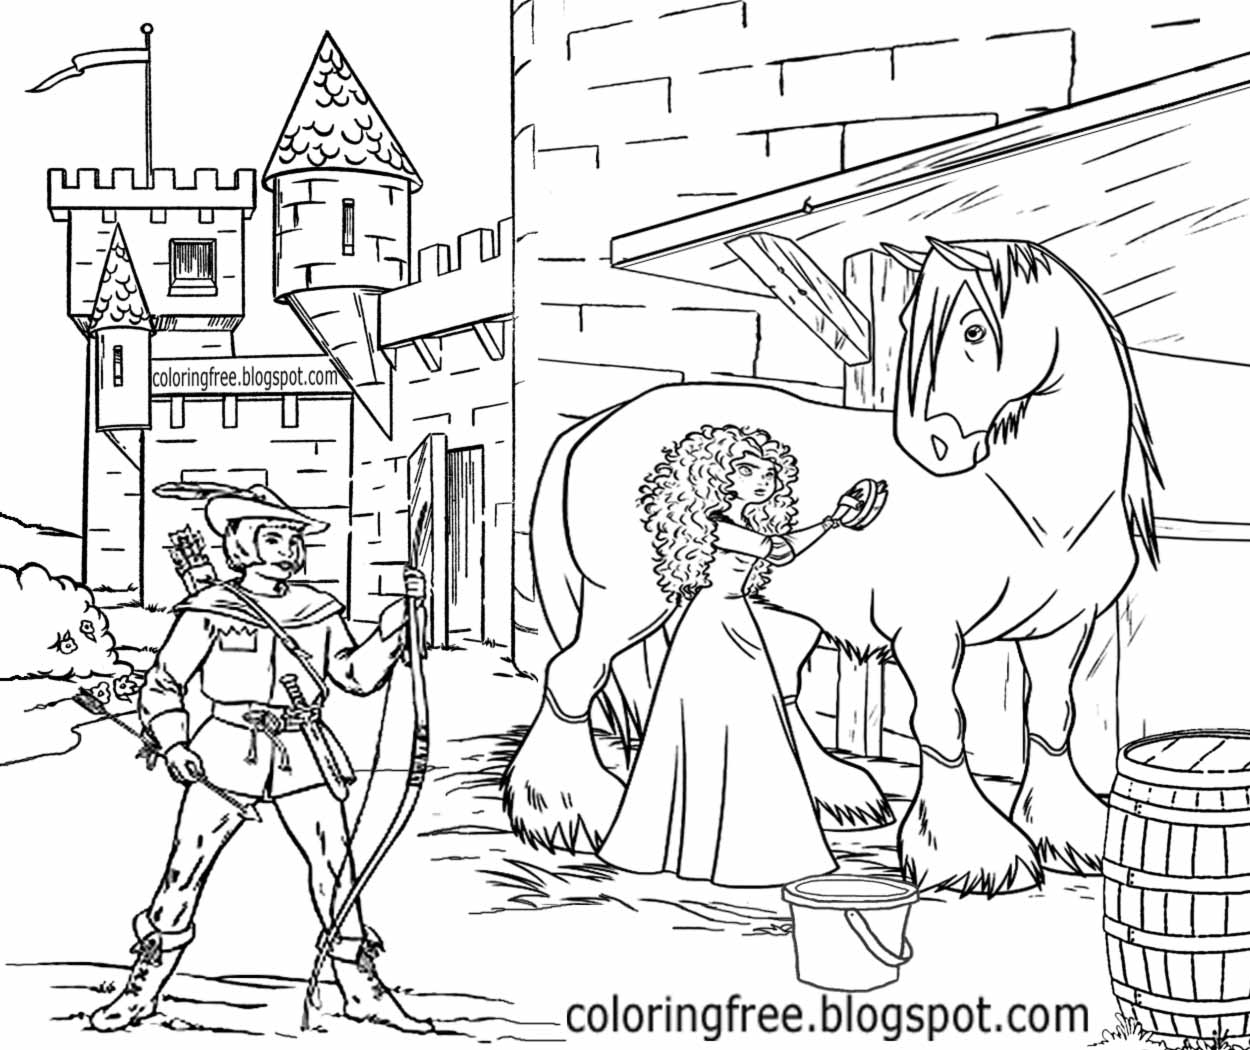 1250x1050 Free Coloring Pages Printable Pictures To Color Kids Drawing Ideas